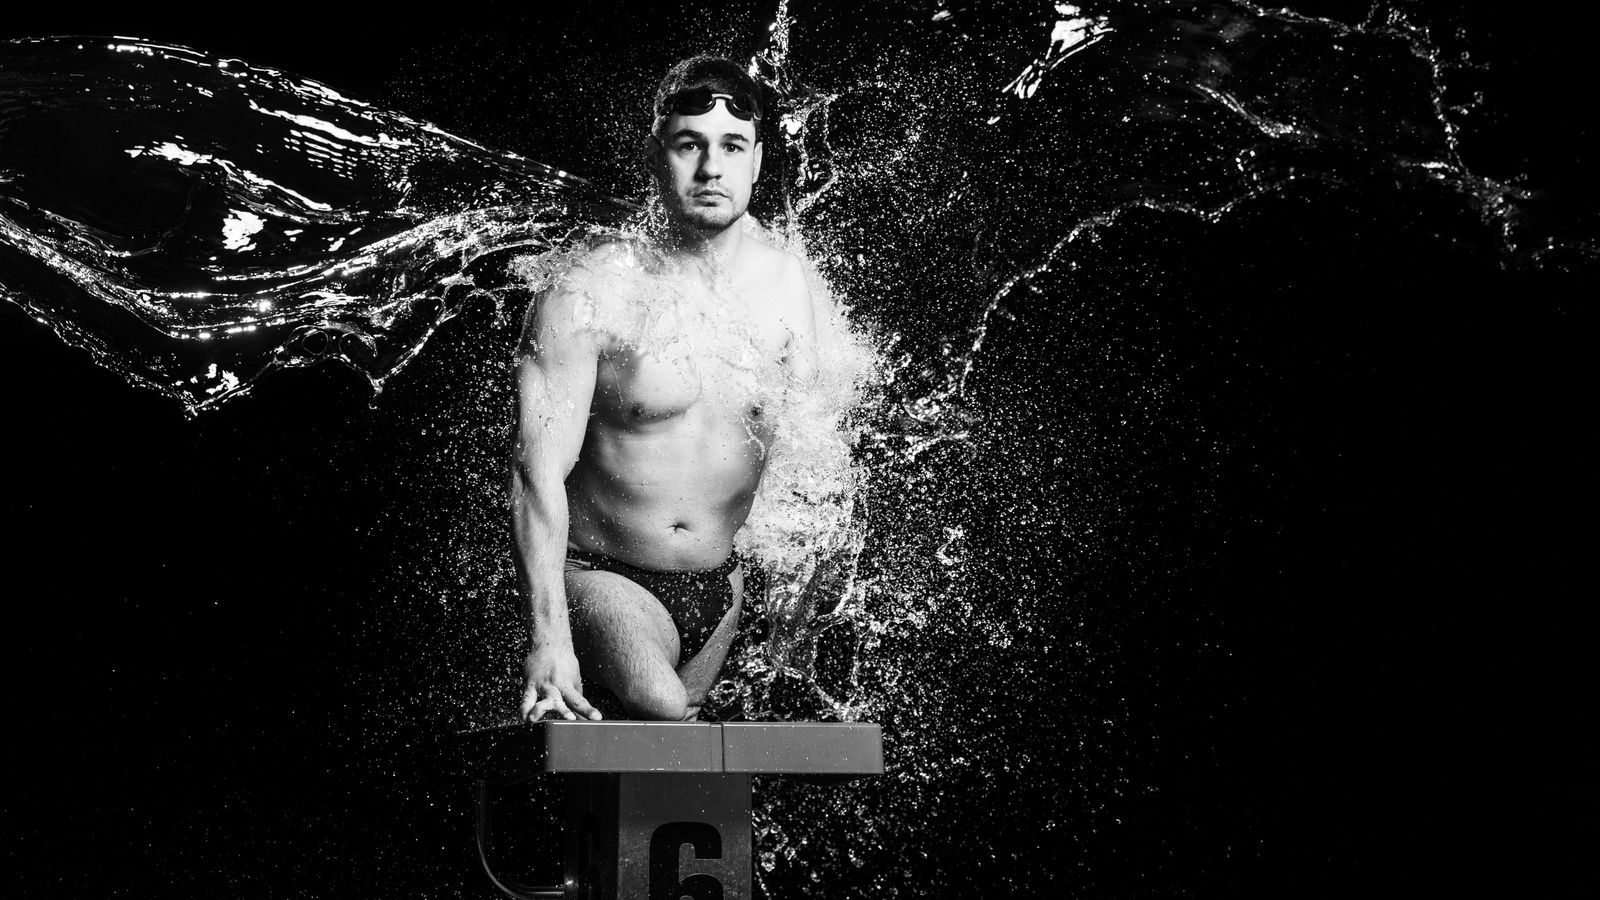 Slovenian swimmer Darko Duric was born with congenital amputation, a condition where limbs are not formed ...